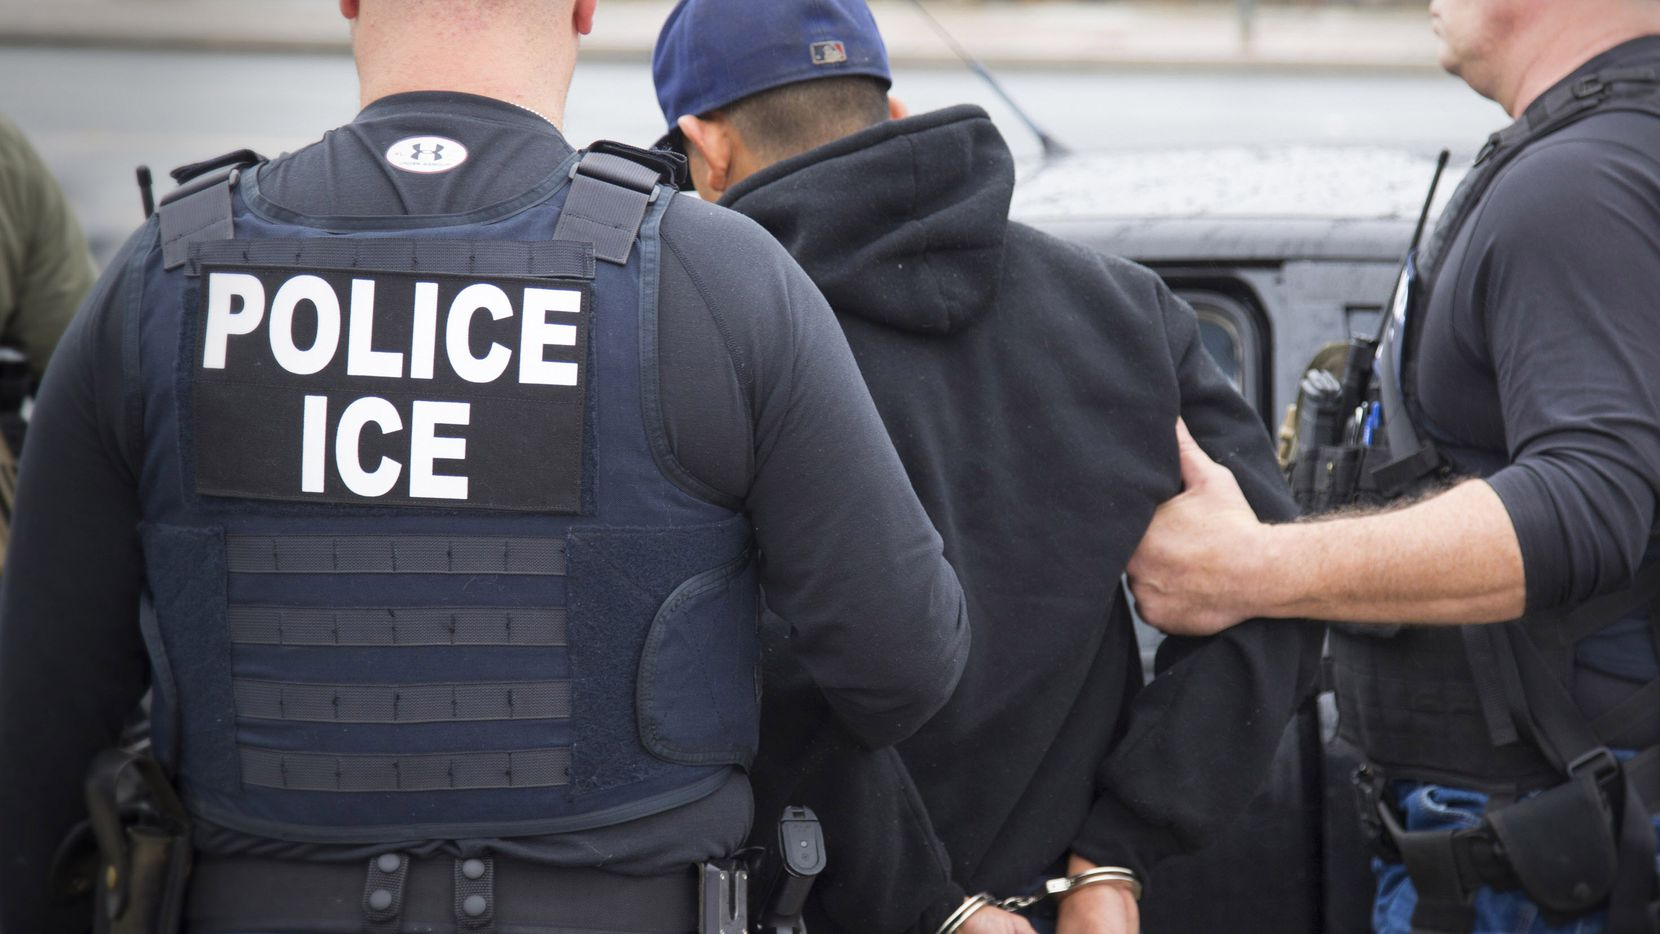 A photo released by U.S. Immigration and Customs Enforcement shows a foreign citizen being arrested this week during a targeted enforcement operation conducted by ICE aimed at immigration fugitives, re-entrants and at-large criminal aliens in Los Angeles. (Charles Reed/U.S. Immigration and Customs Enforcement via AP)